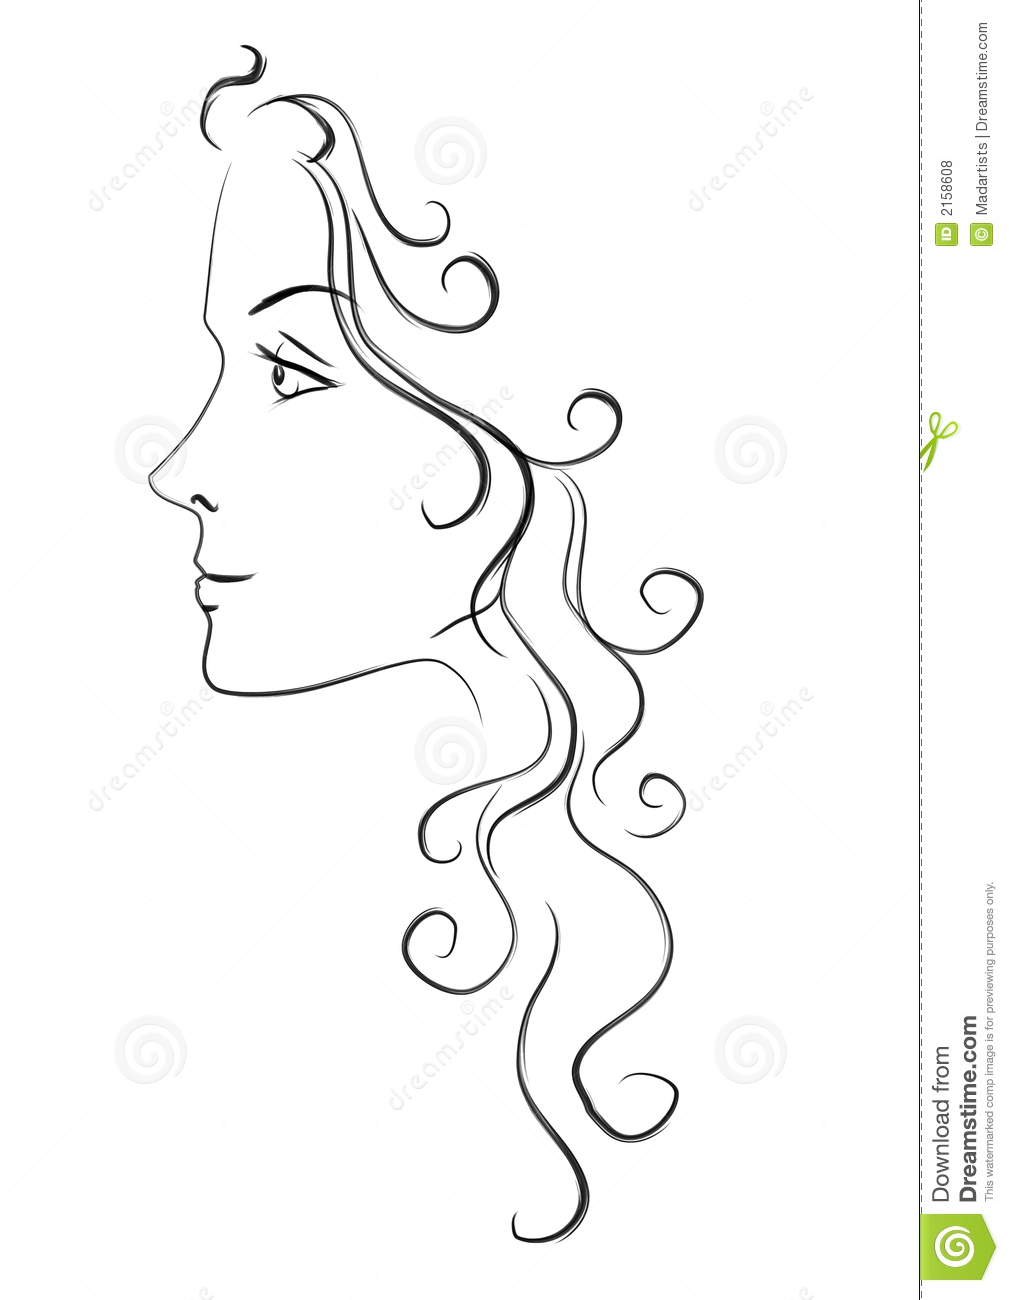 Head of Woman With Long Hair